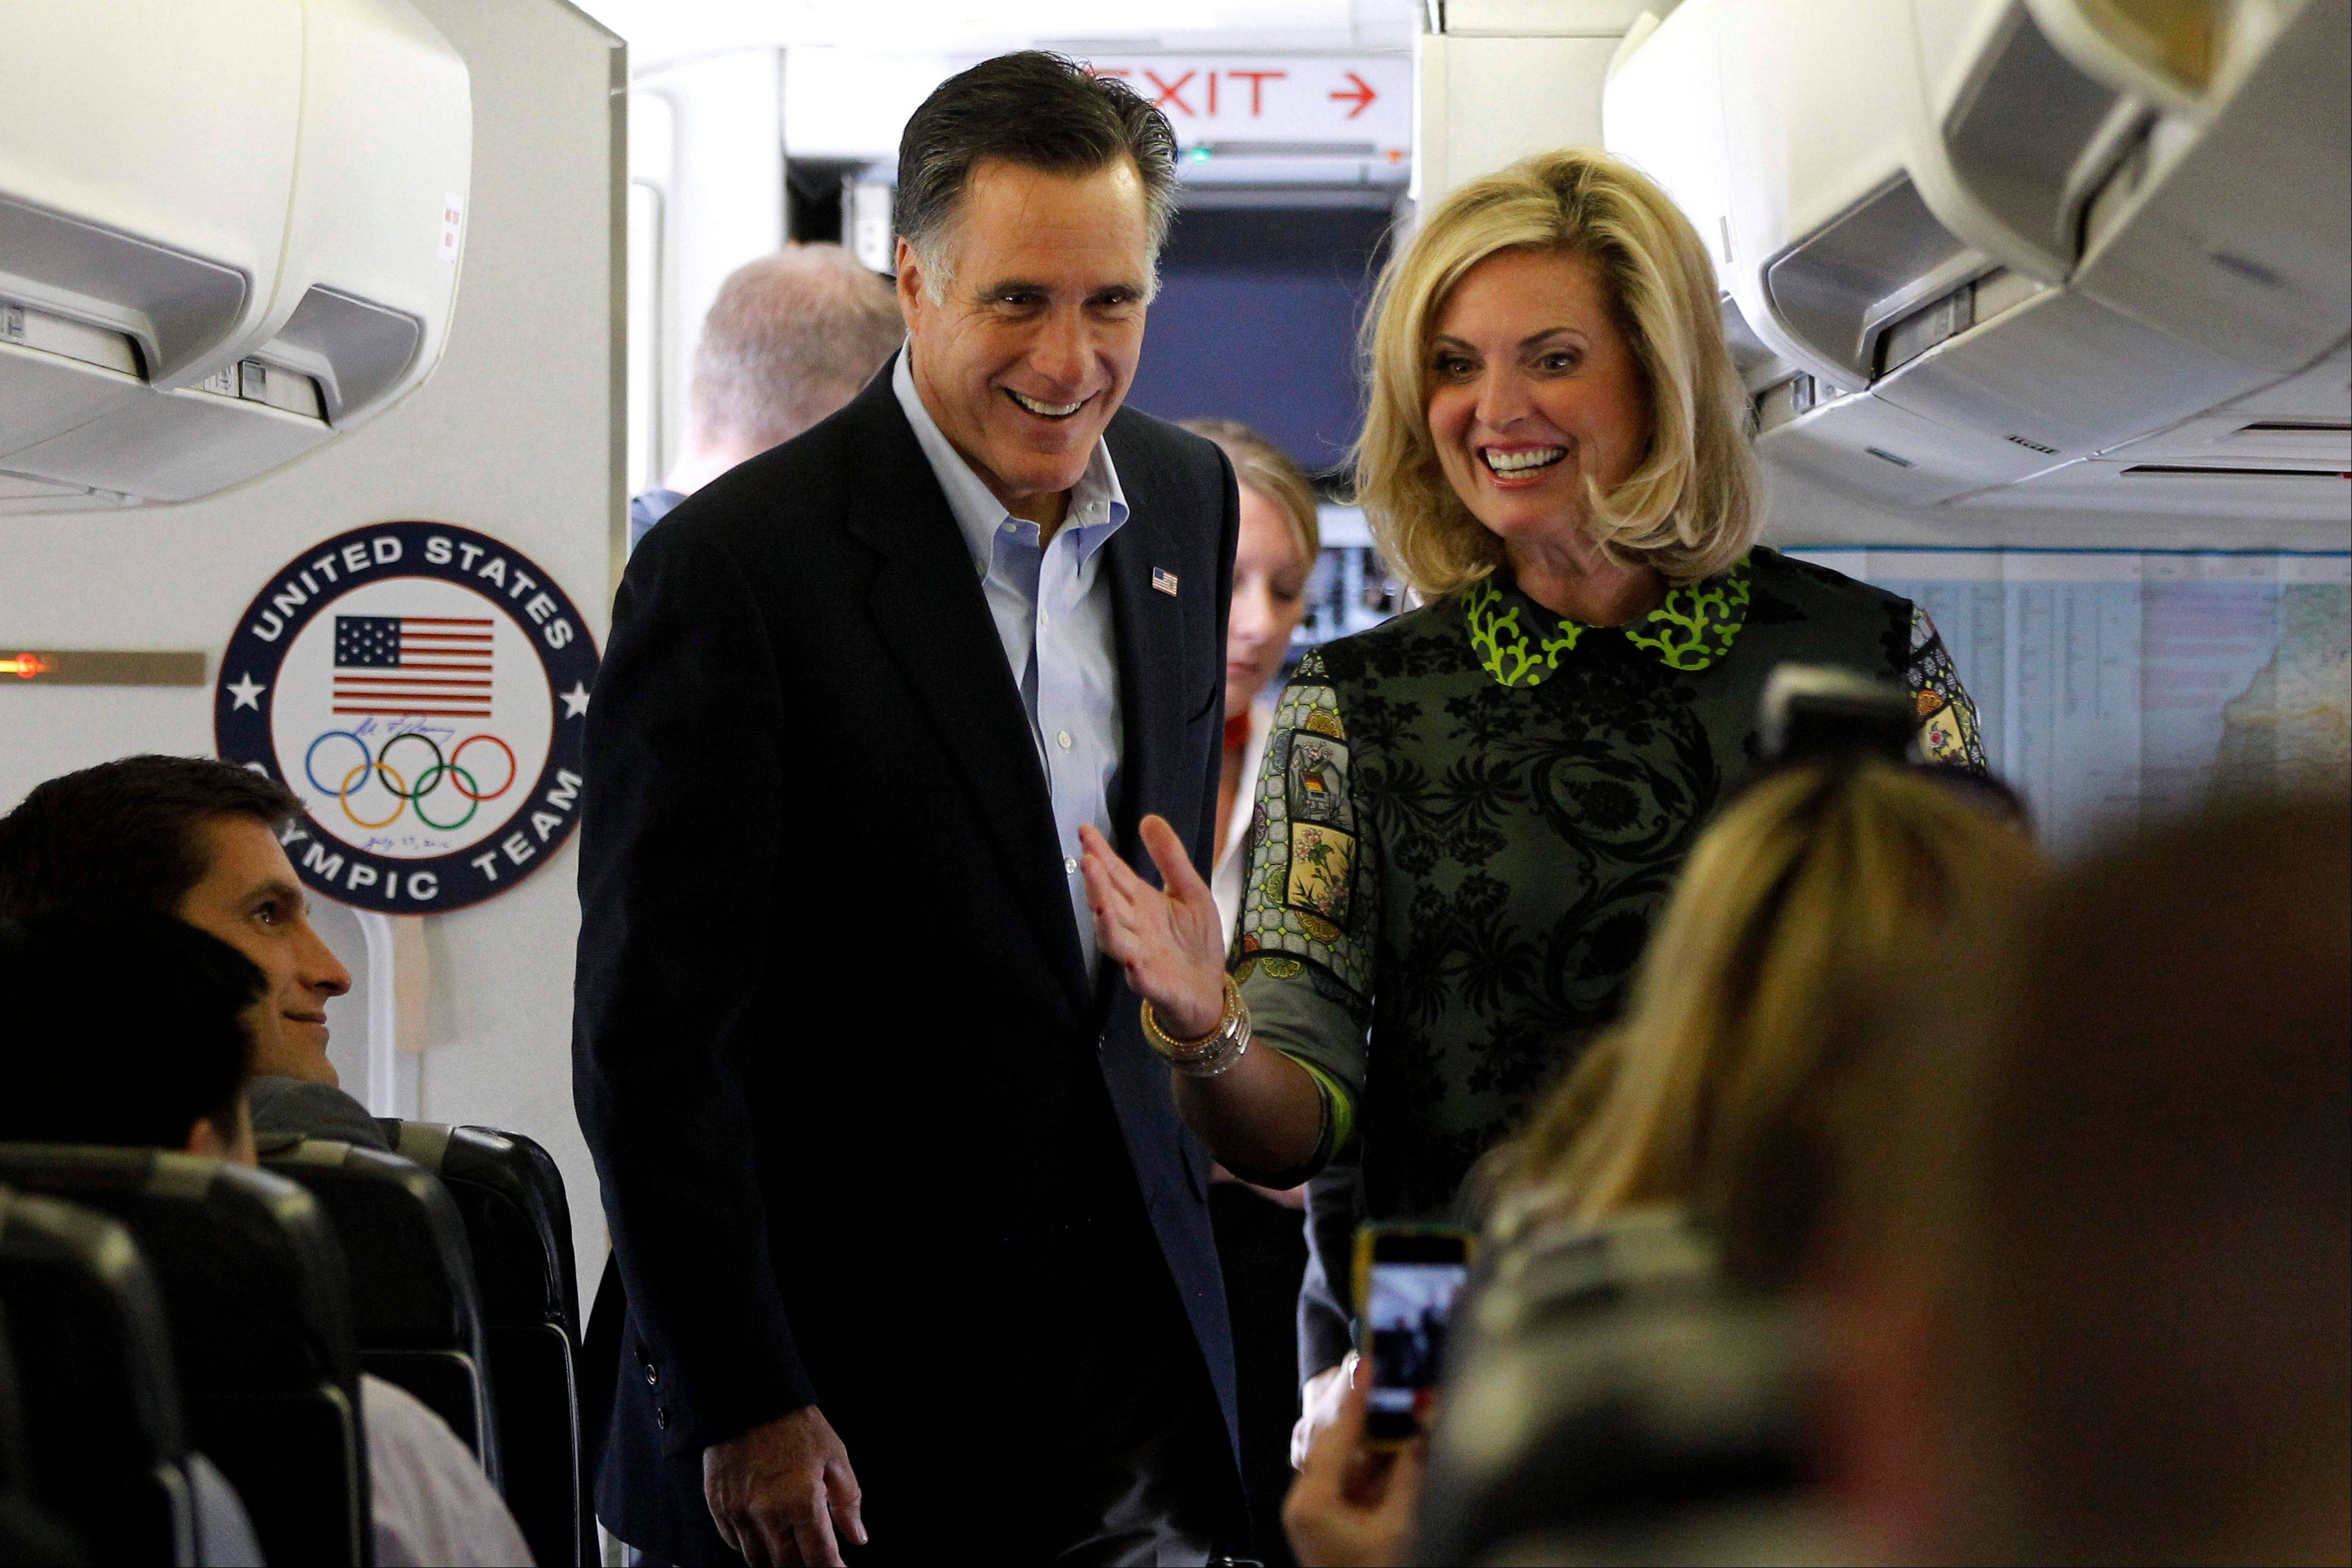 Republican presidential candidate and former Massachusetts Gov. Mitt Romney and his wife Ann board his charter plane Saturday at London Stansted Airport as he travels to Israel.